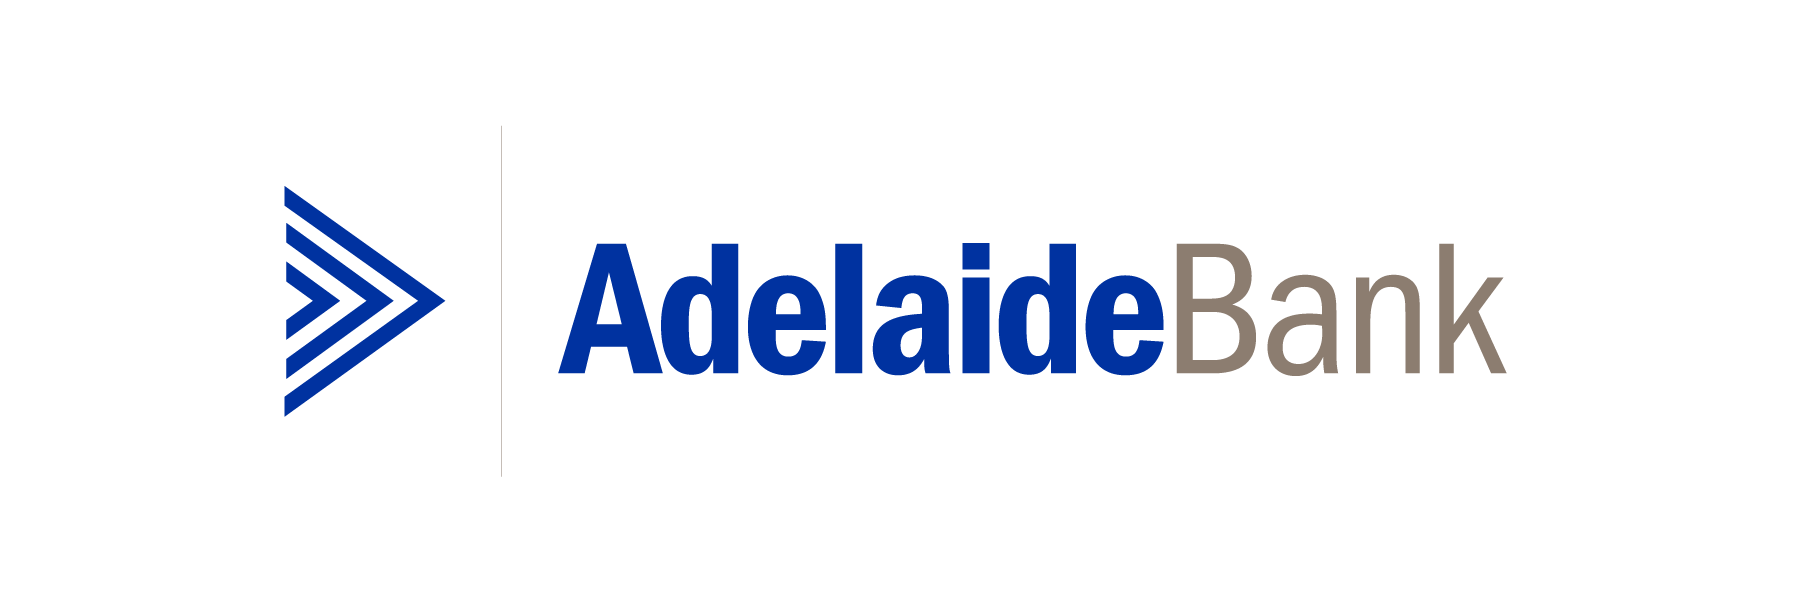 Adelaide Bank Finance